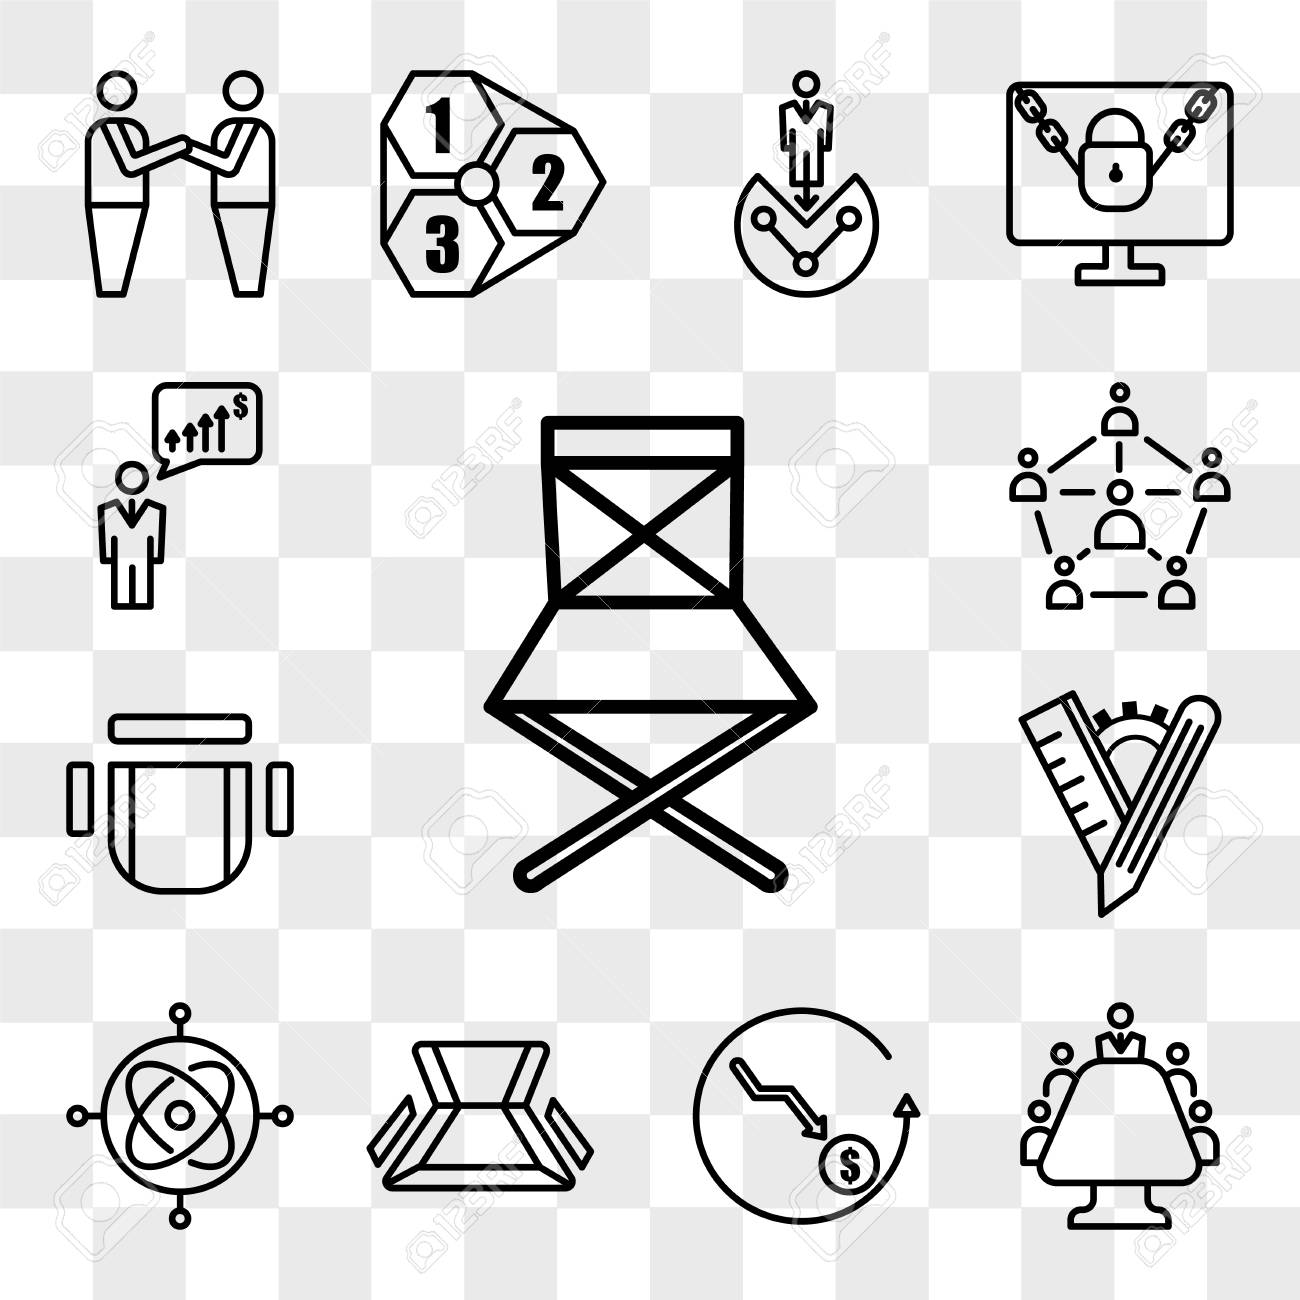 Set Of 13 transparent editable icons such as folding chair, mediation, cheaper, gyroscope, tailor made, chair top view, sociology, anticipation, web ui icon pack, transparency set - 111890913